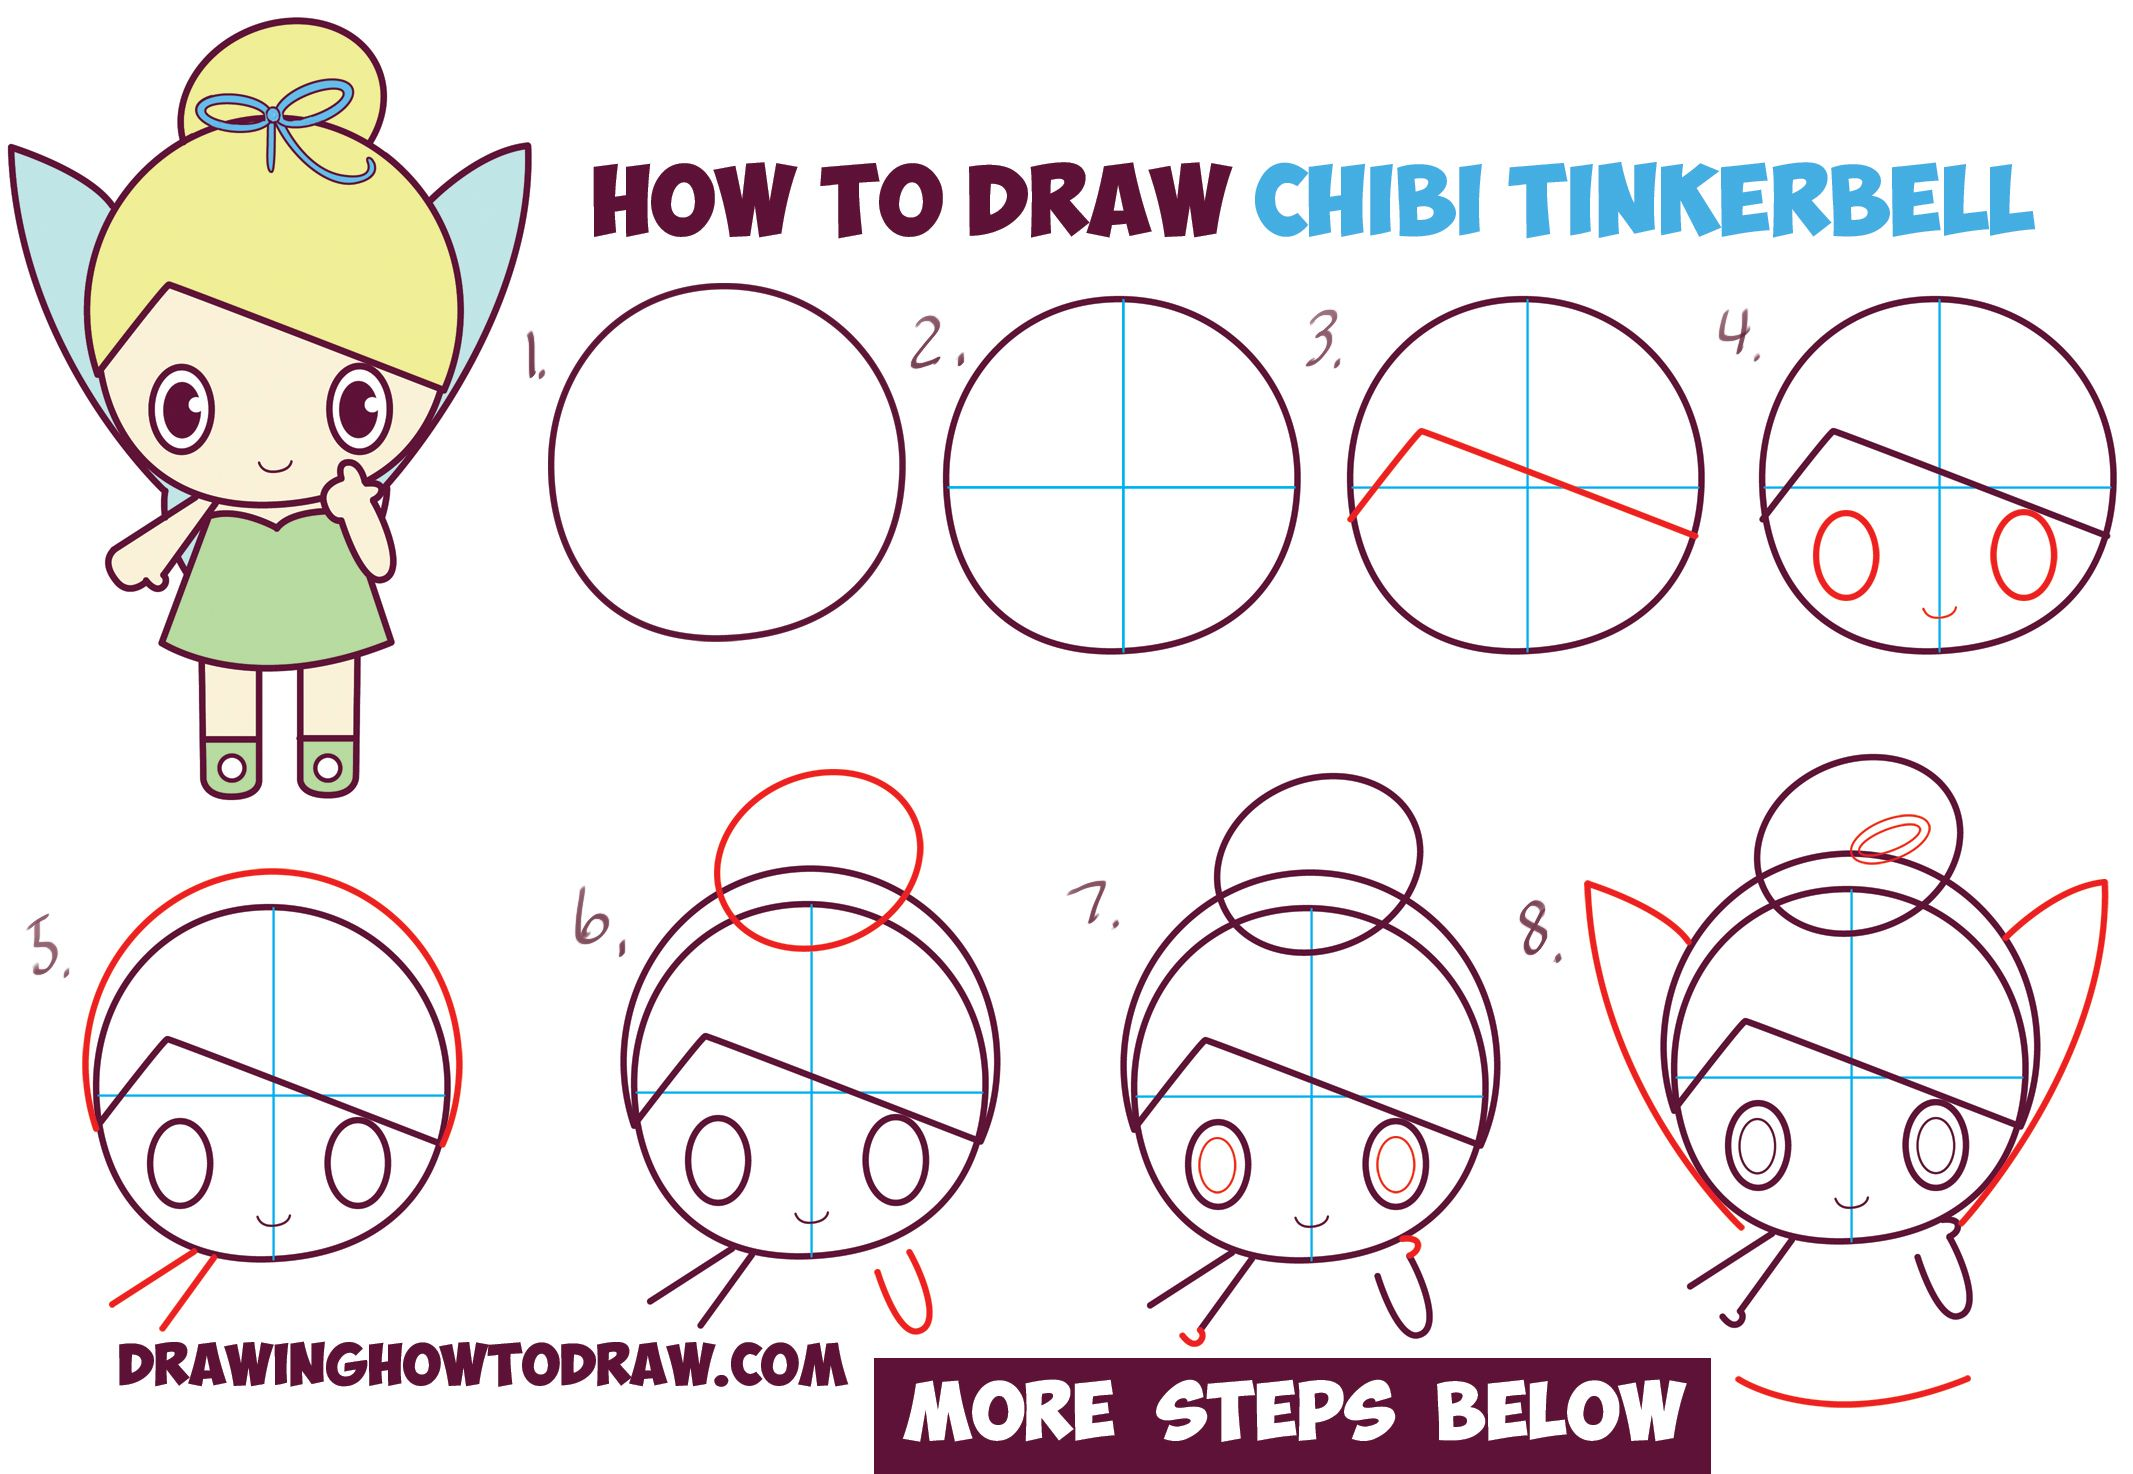 how to draw chibi tinkerbell the disney fairy in easy step by step drawing